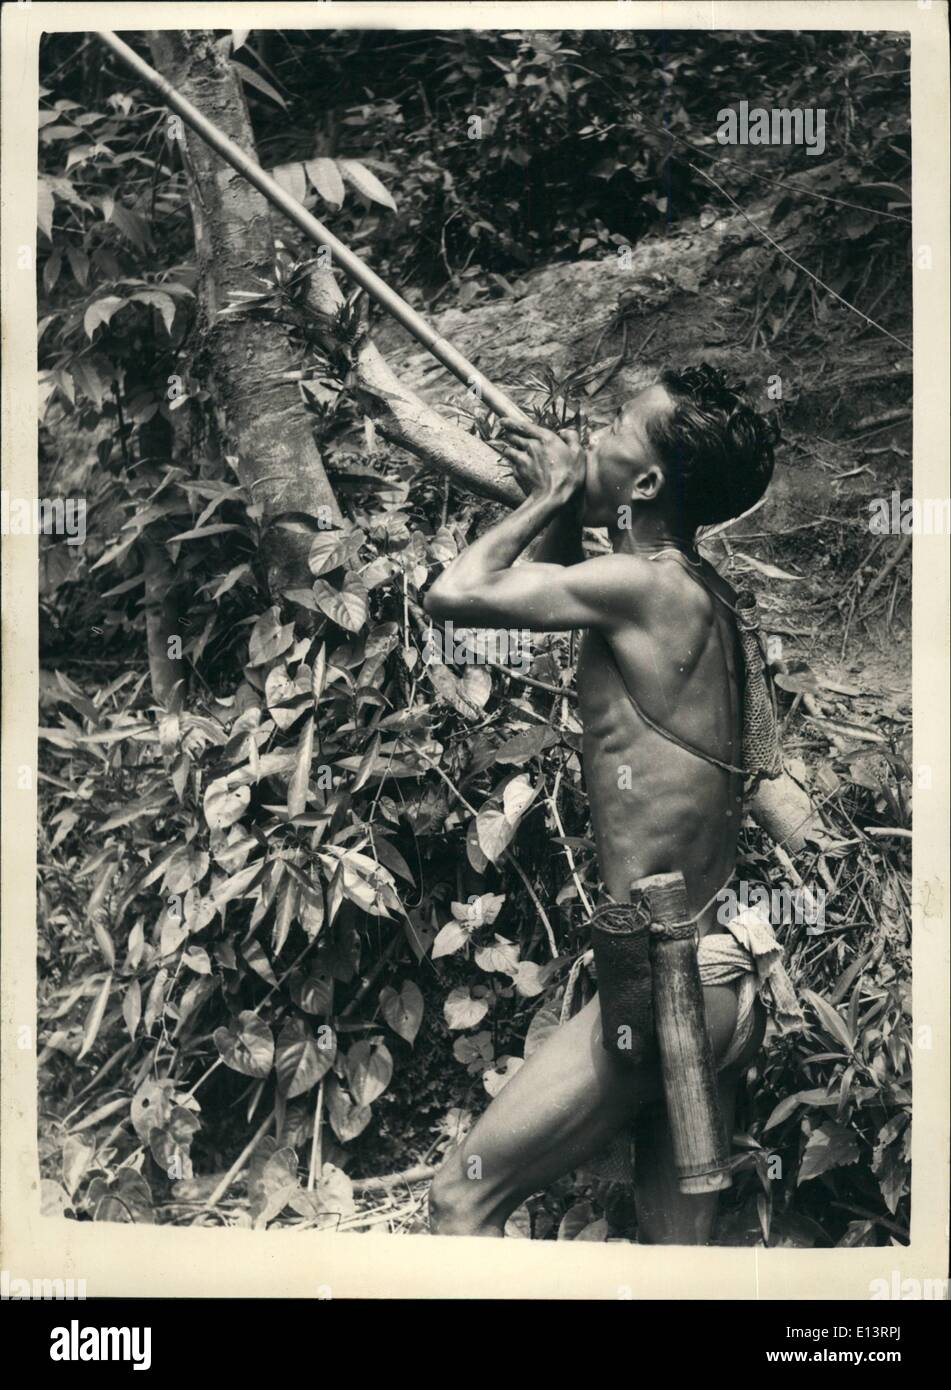 Mar. 27, 2012 - The blow-pipe is still favourite weapon of the Malaya Aborigine.: Malaya is one of the few parts of the world which has communities of true pigmy people - aborigines. In the dense jungle areas which still provides cover for the terrorist bands these tiny primitive people live their lives - very much as they have been doing for a thousand years or more. Photo shows although some of the manfolk have been shown how to use firearms by anti-terrorist forces -0 his favourite weapon is still a poison dart and blowpipe. It is silent - accurate and very lethal - Stock Image